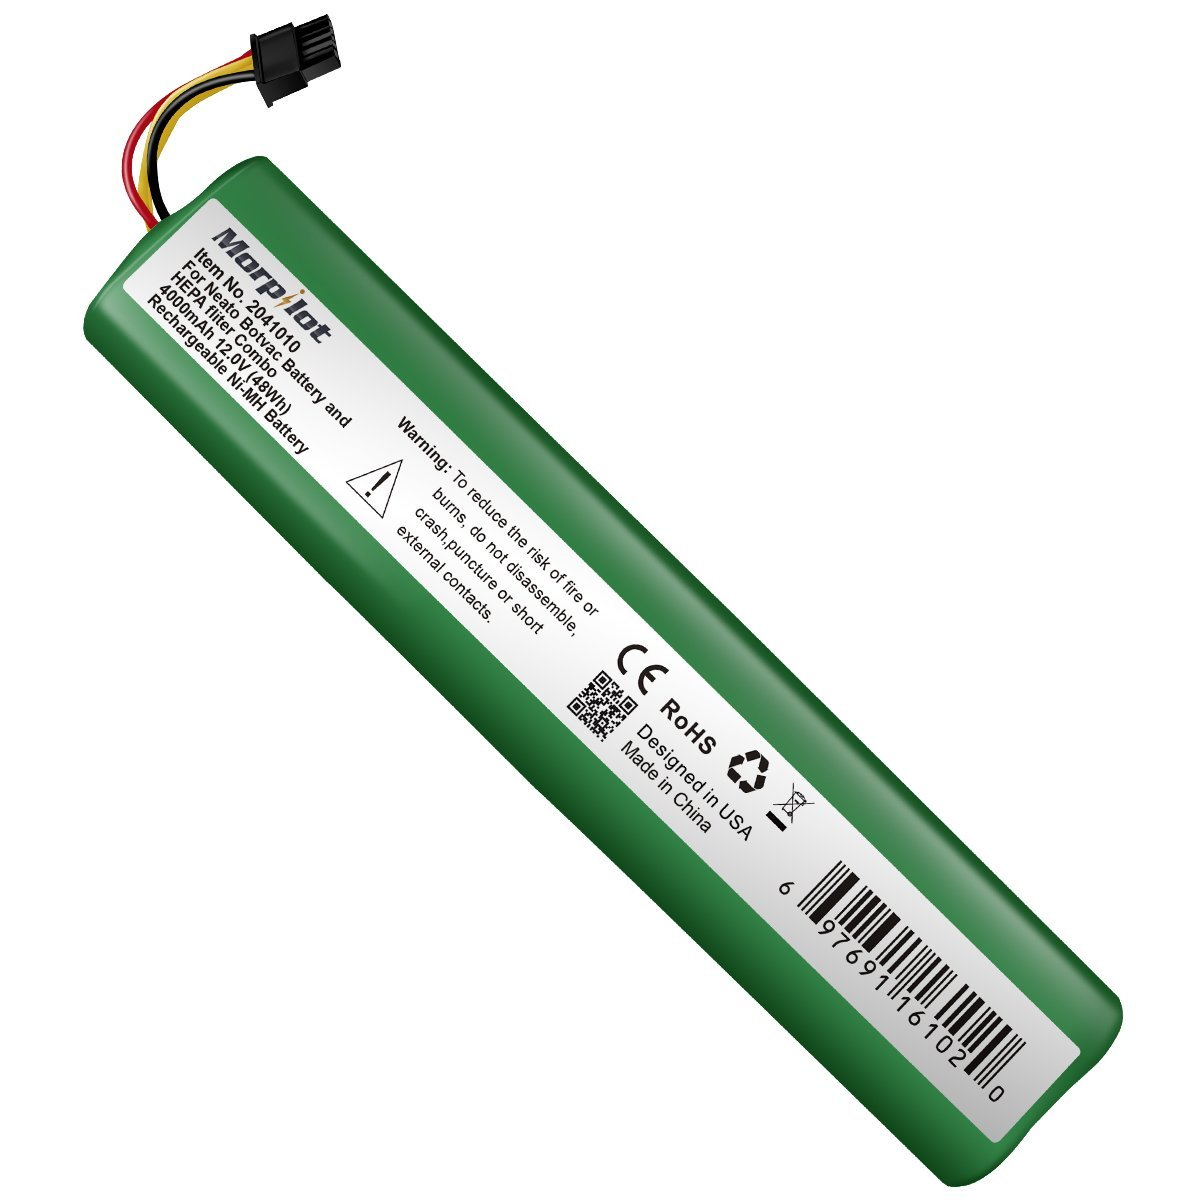 keenstone 12V 4500mAh Replacement Battery for Neato Botvac Series and Botvac D Series Neato Botvac Battery 70e, 75, 80, D75, D80, Botvac D85 Neato Robot Vacuum Cleaner Batteries